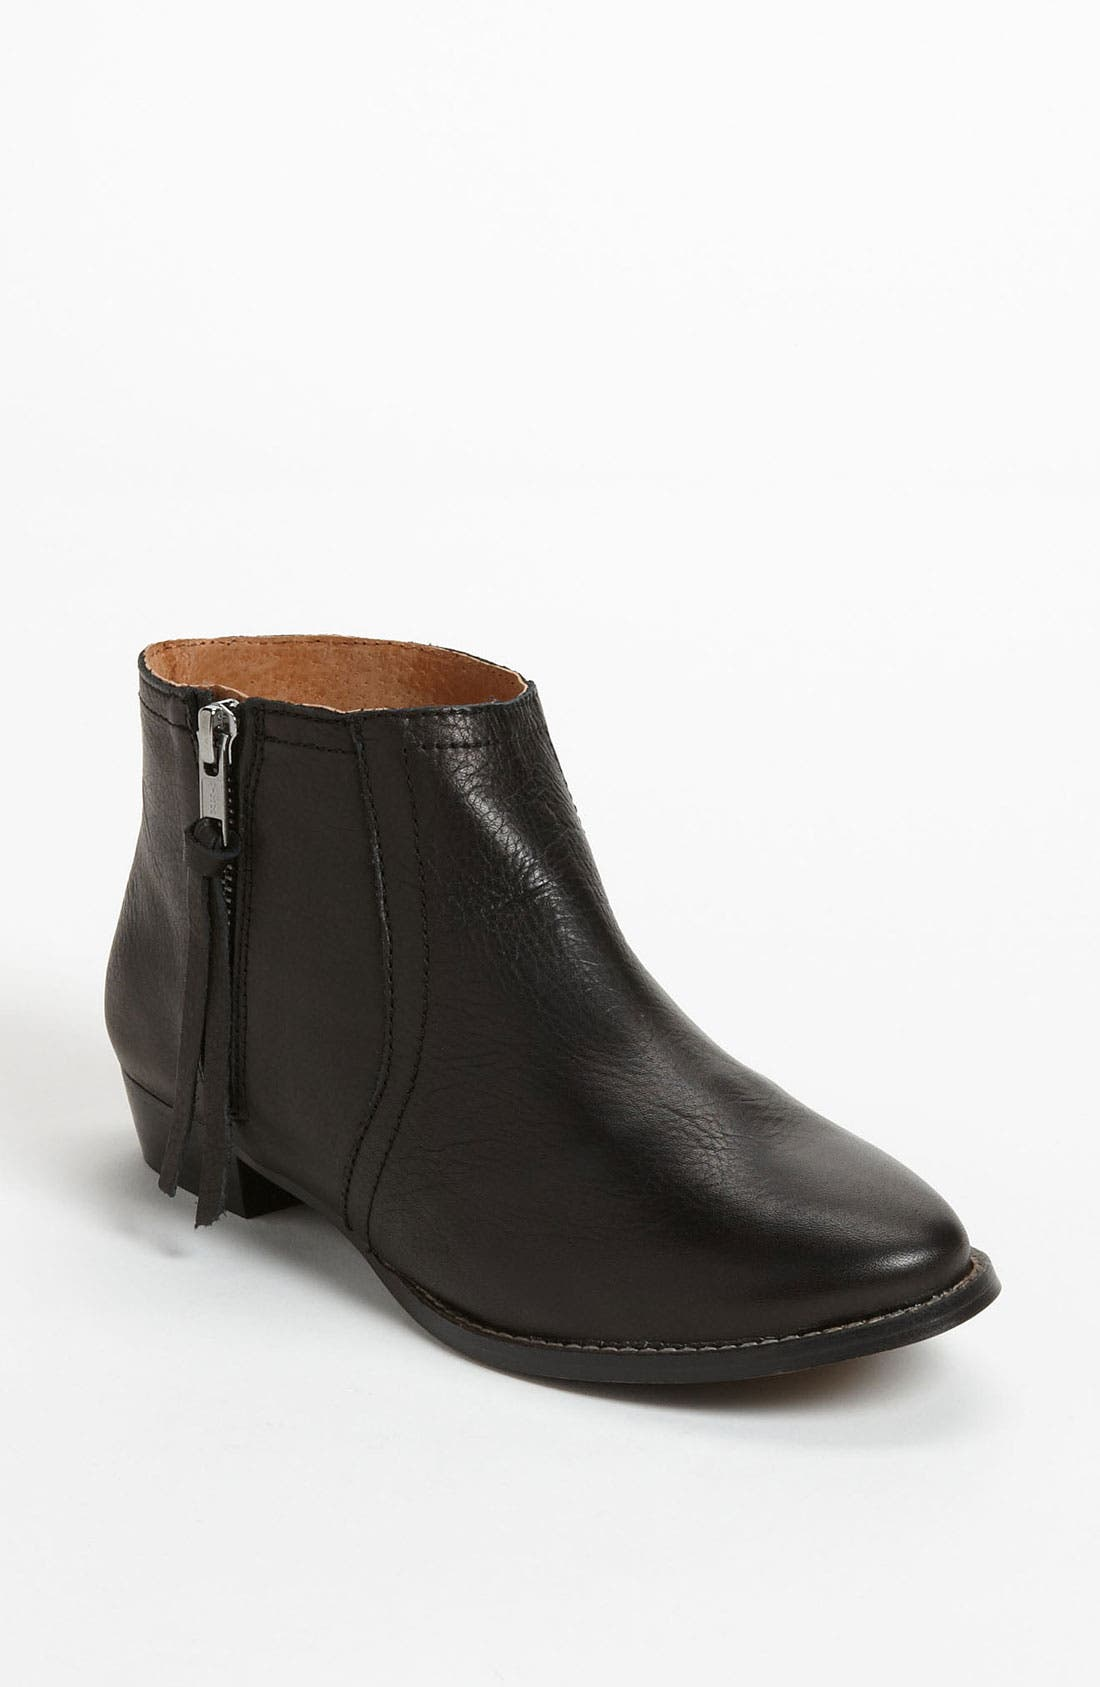 Main Image - Chio 'Green' Bootie